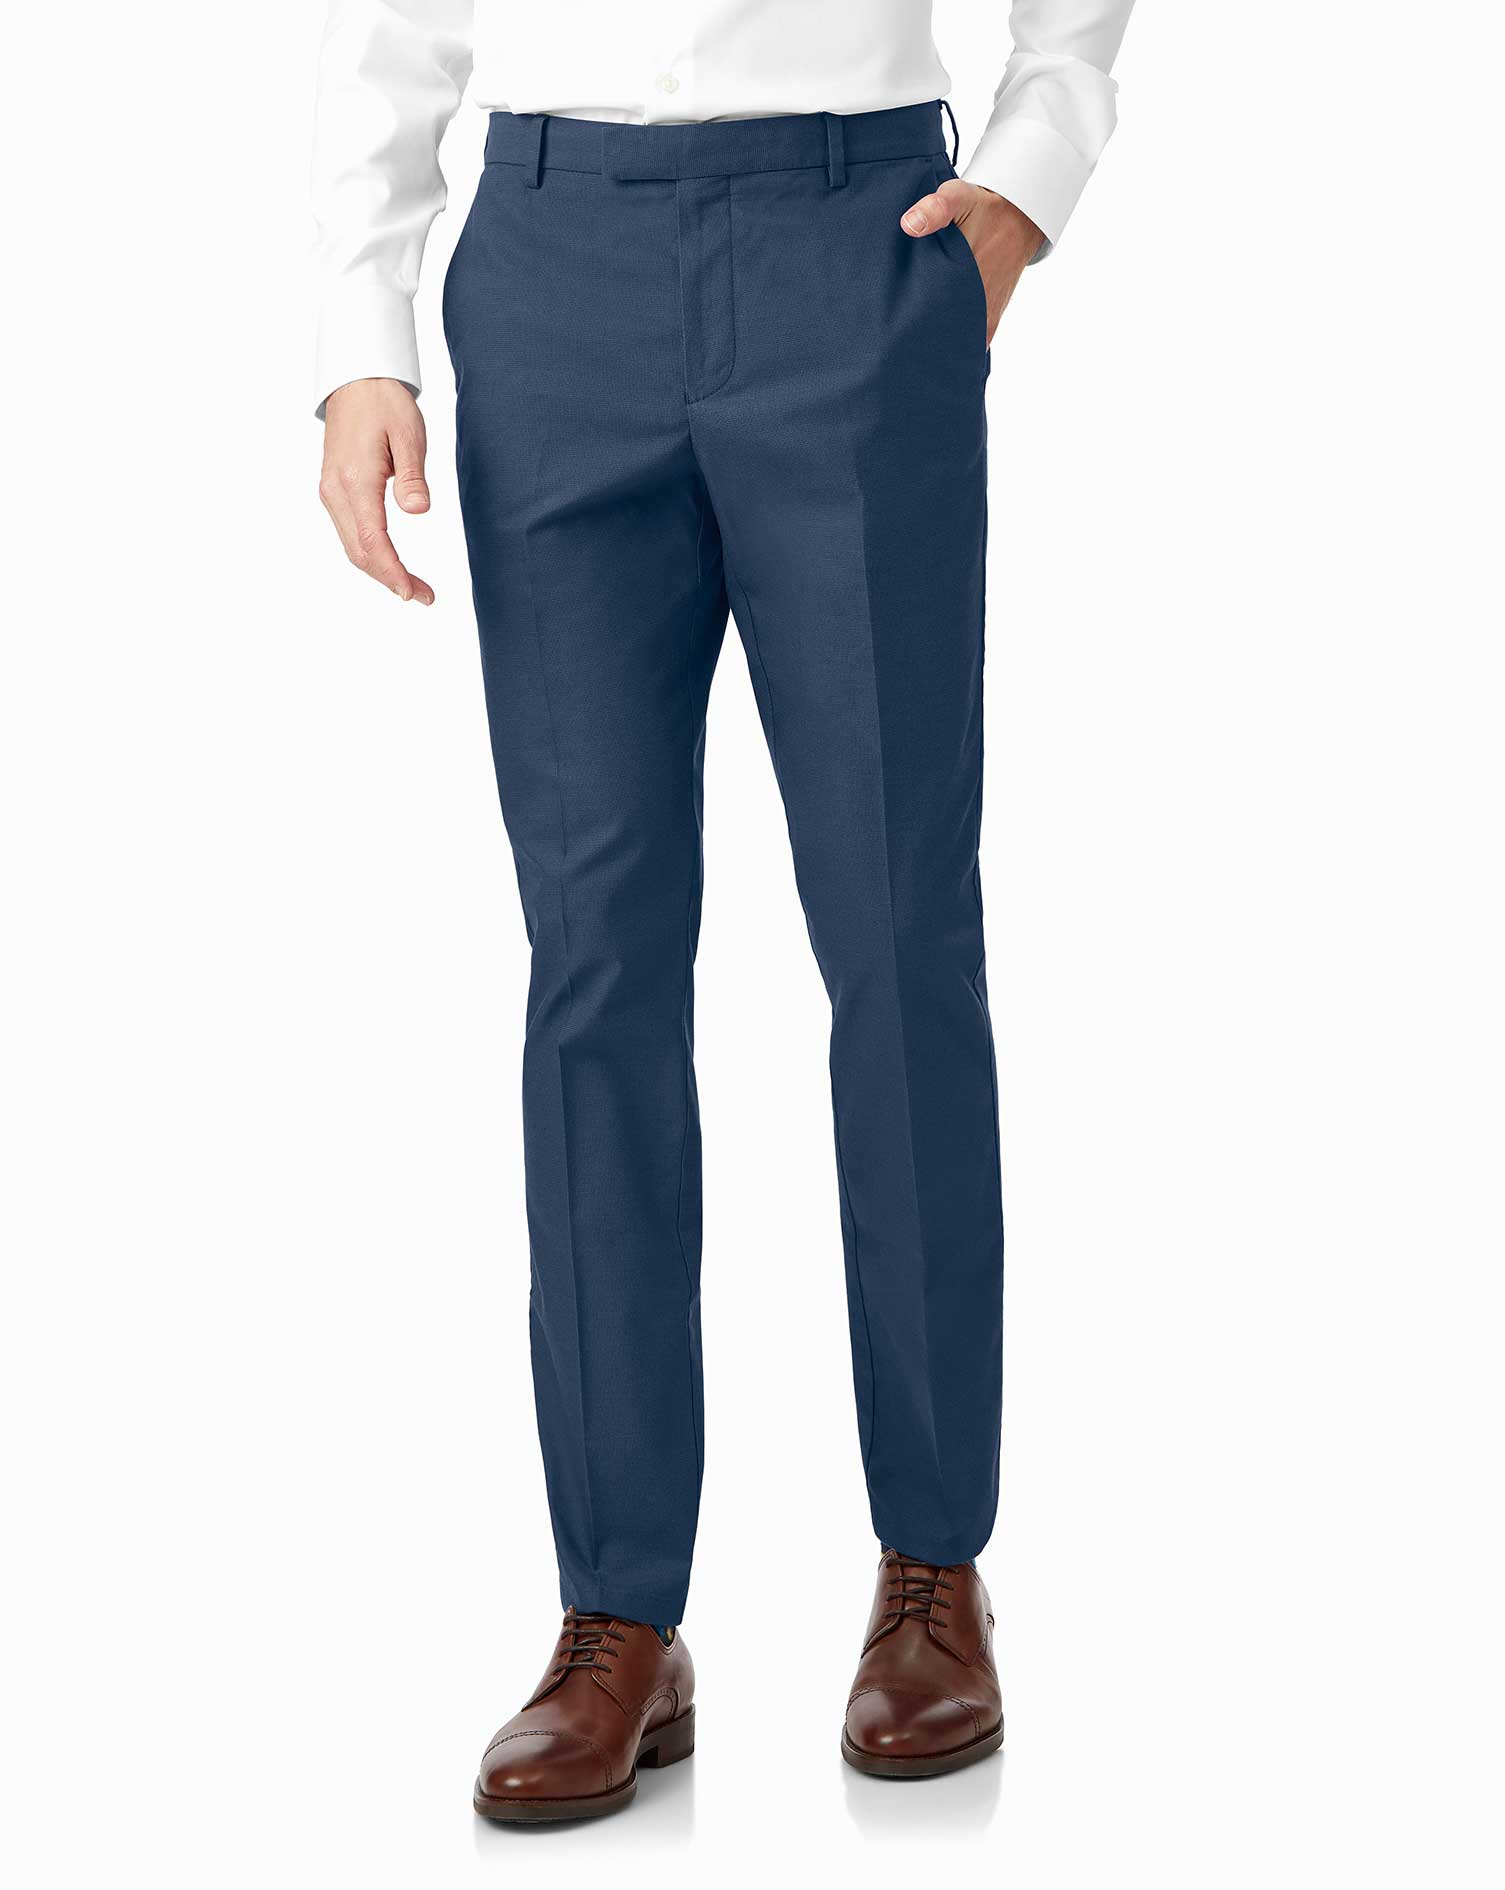 Bright Blue Non-Iron Stretch Textured Trousers Size W36 L34 by Charles Tyrwhitt